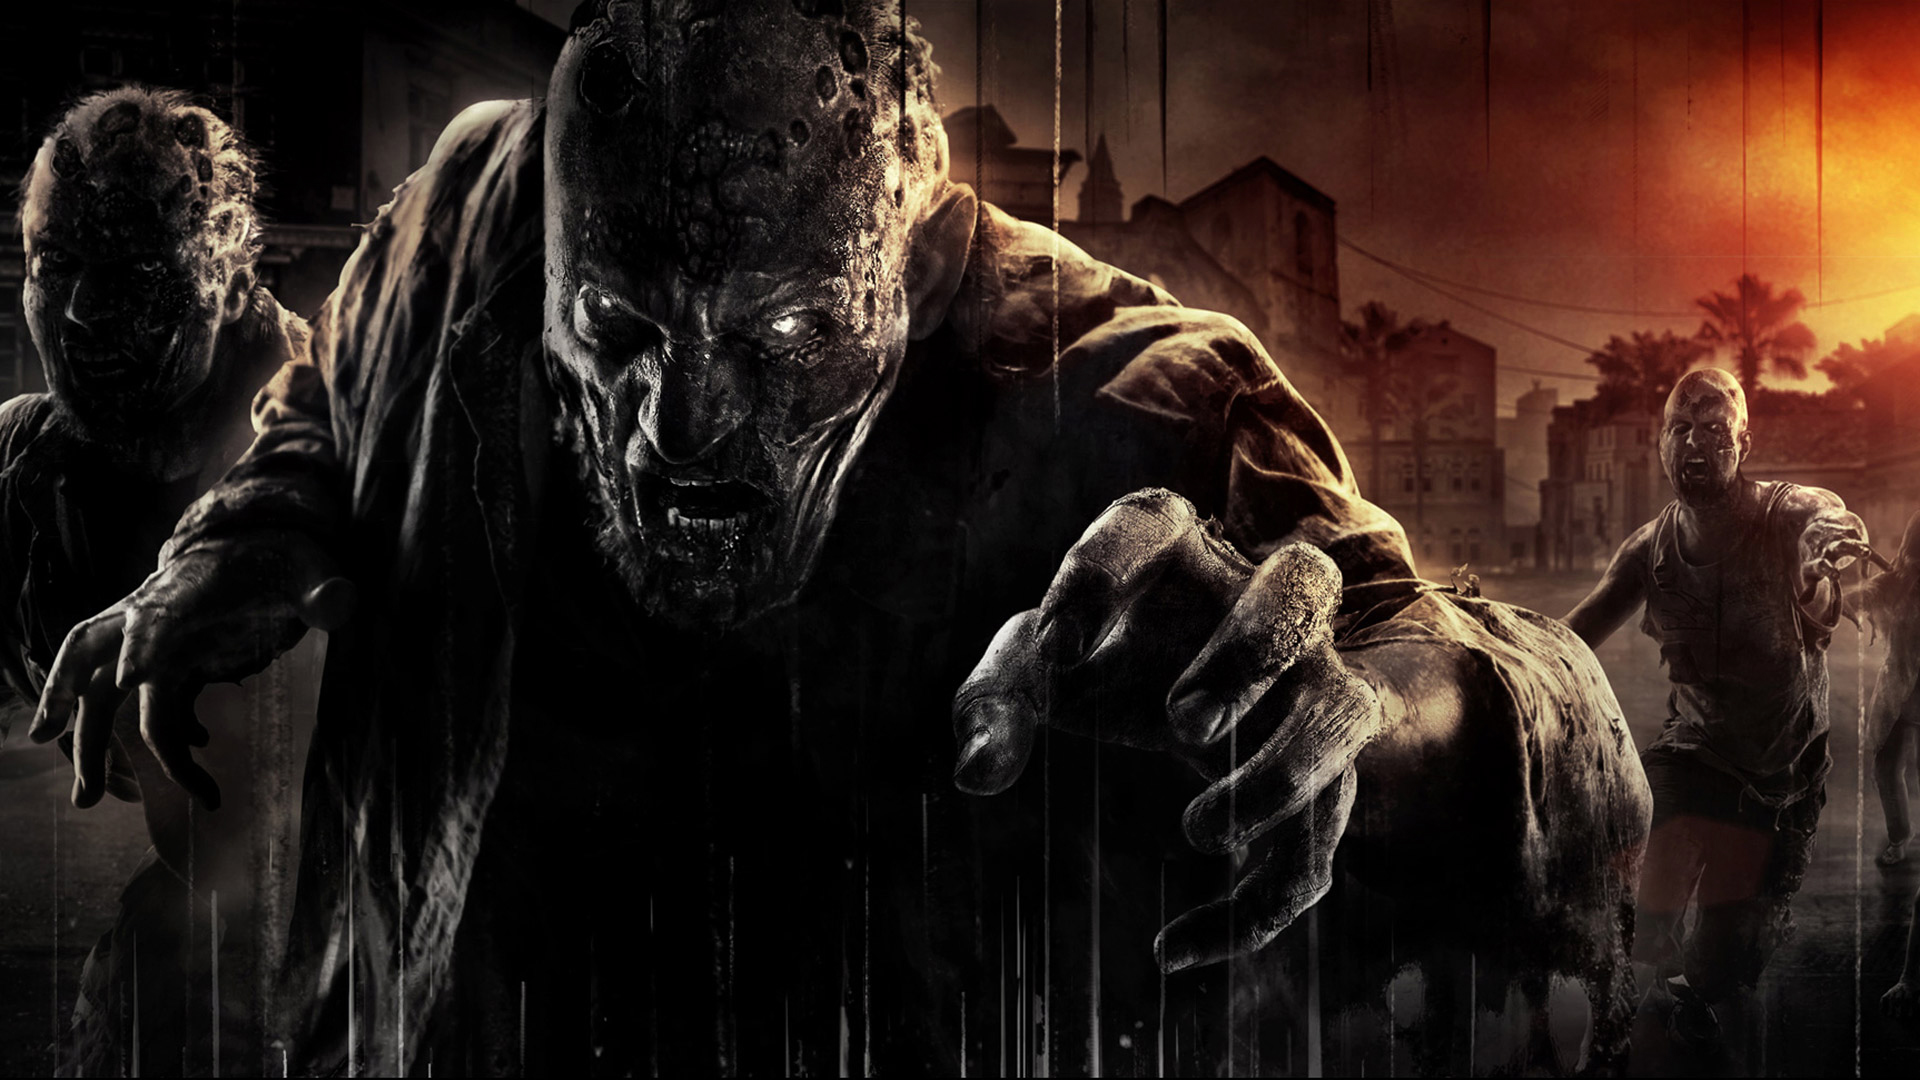 Hd wallpaper zombie - Dying Light Game Hd Zombies 1920x1080